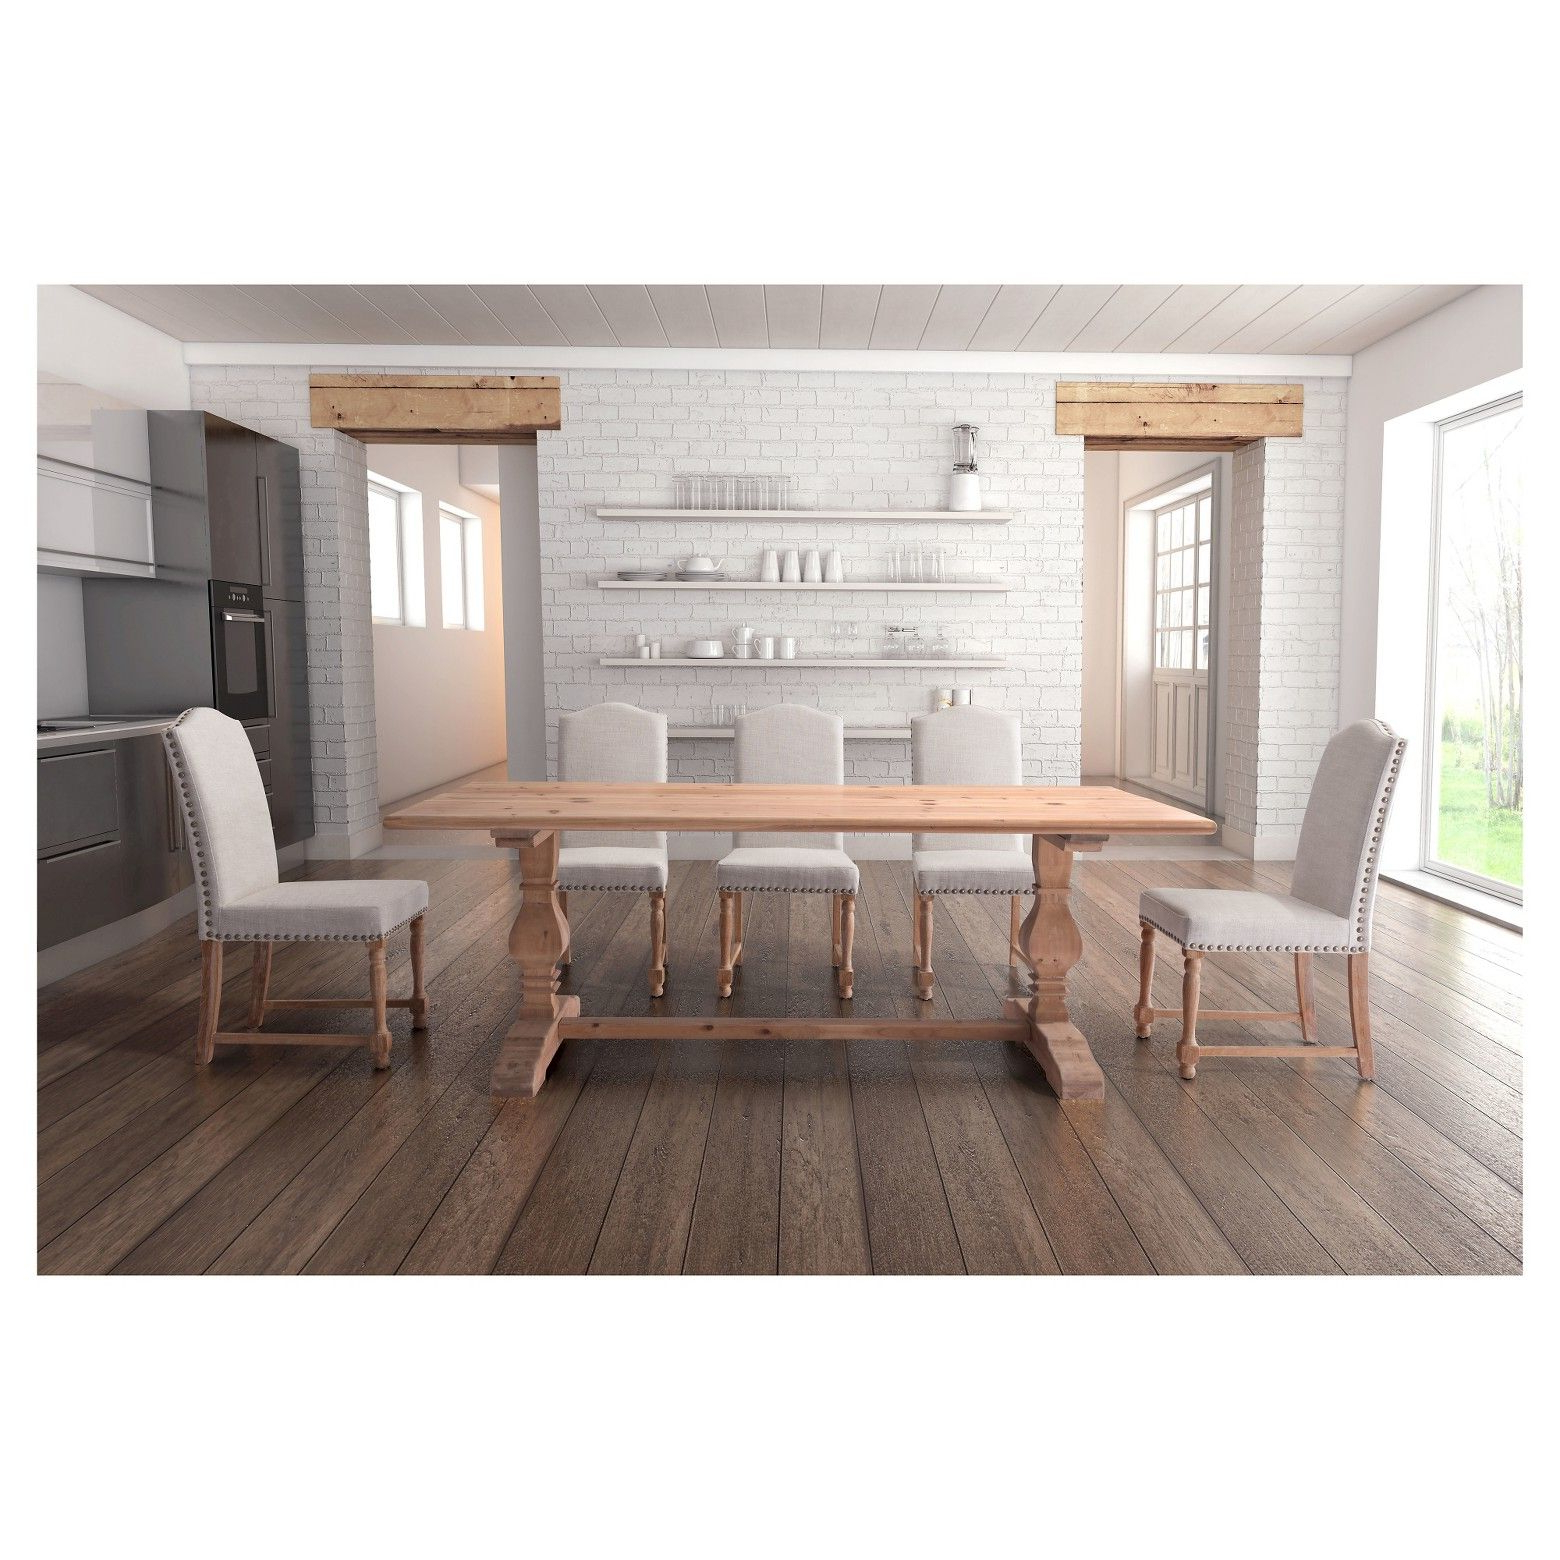 Urban Farmhouse Meets City Couture In The Rectangular With Regard To Current Tudor City 28'' Dining Tables (View 19 of 20)